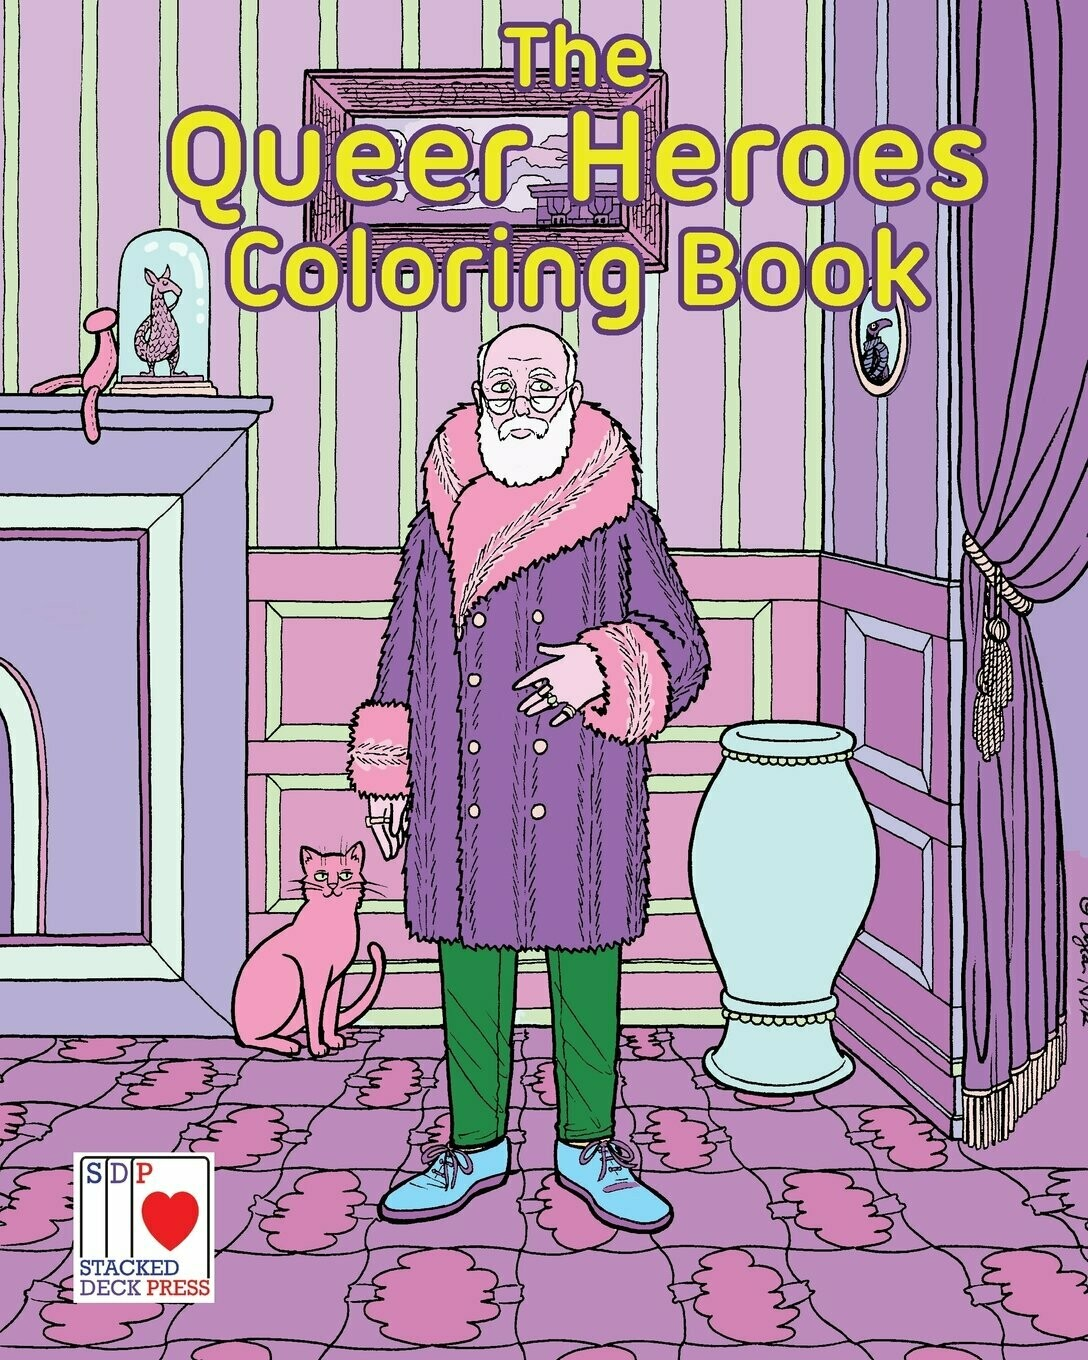 Queer Heroes Coloring Book - Cassell et al